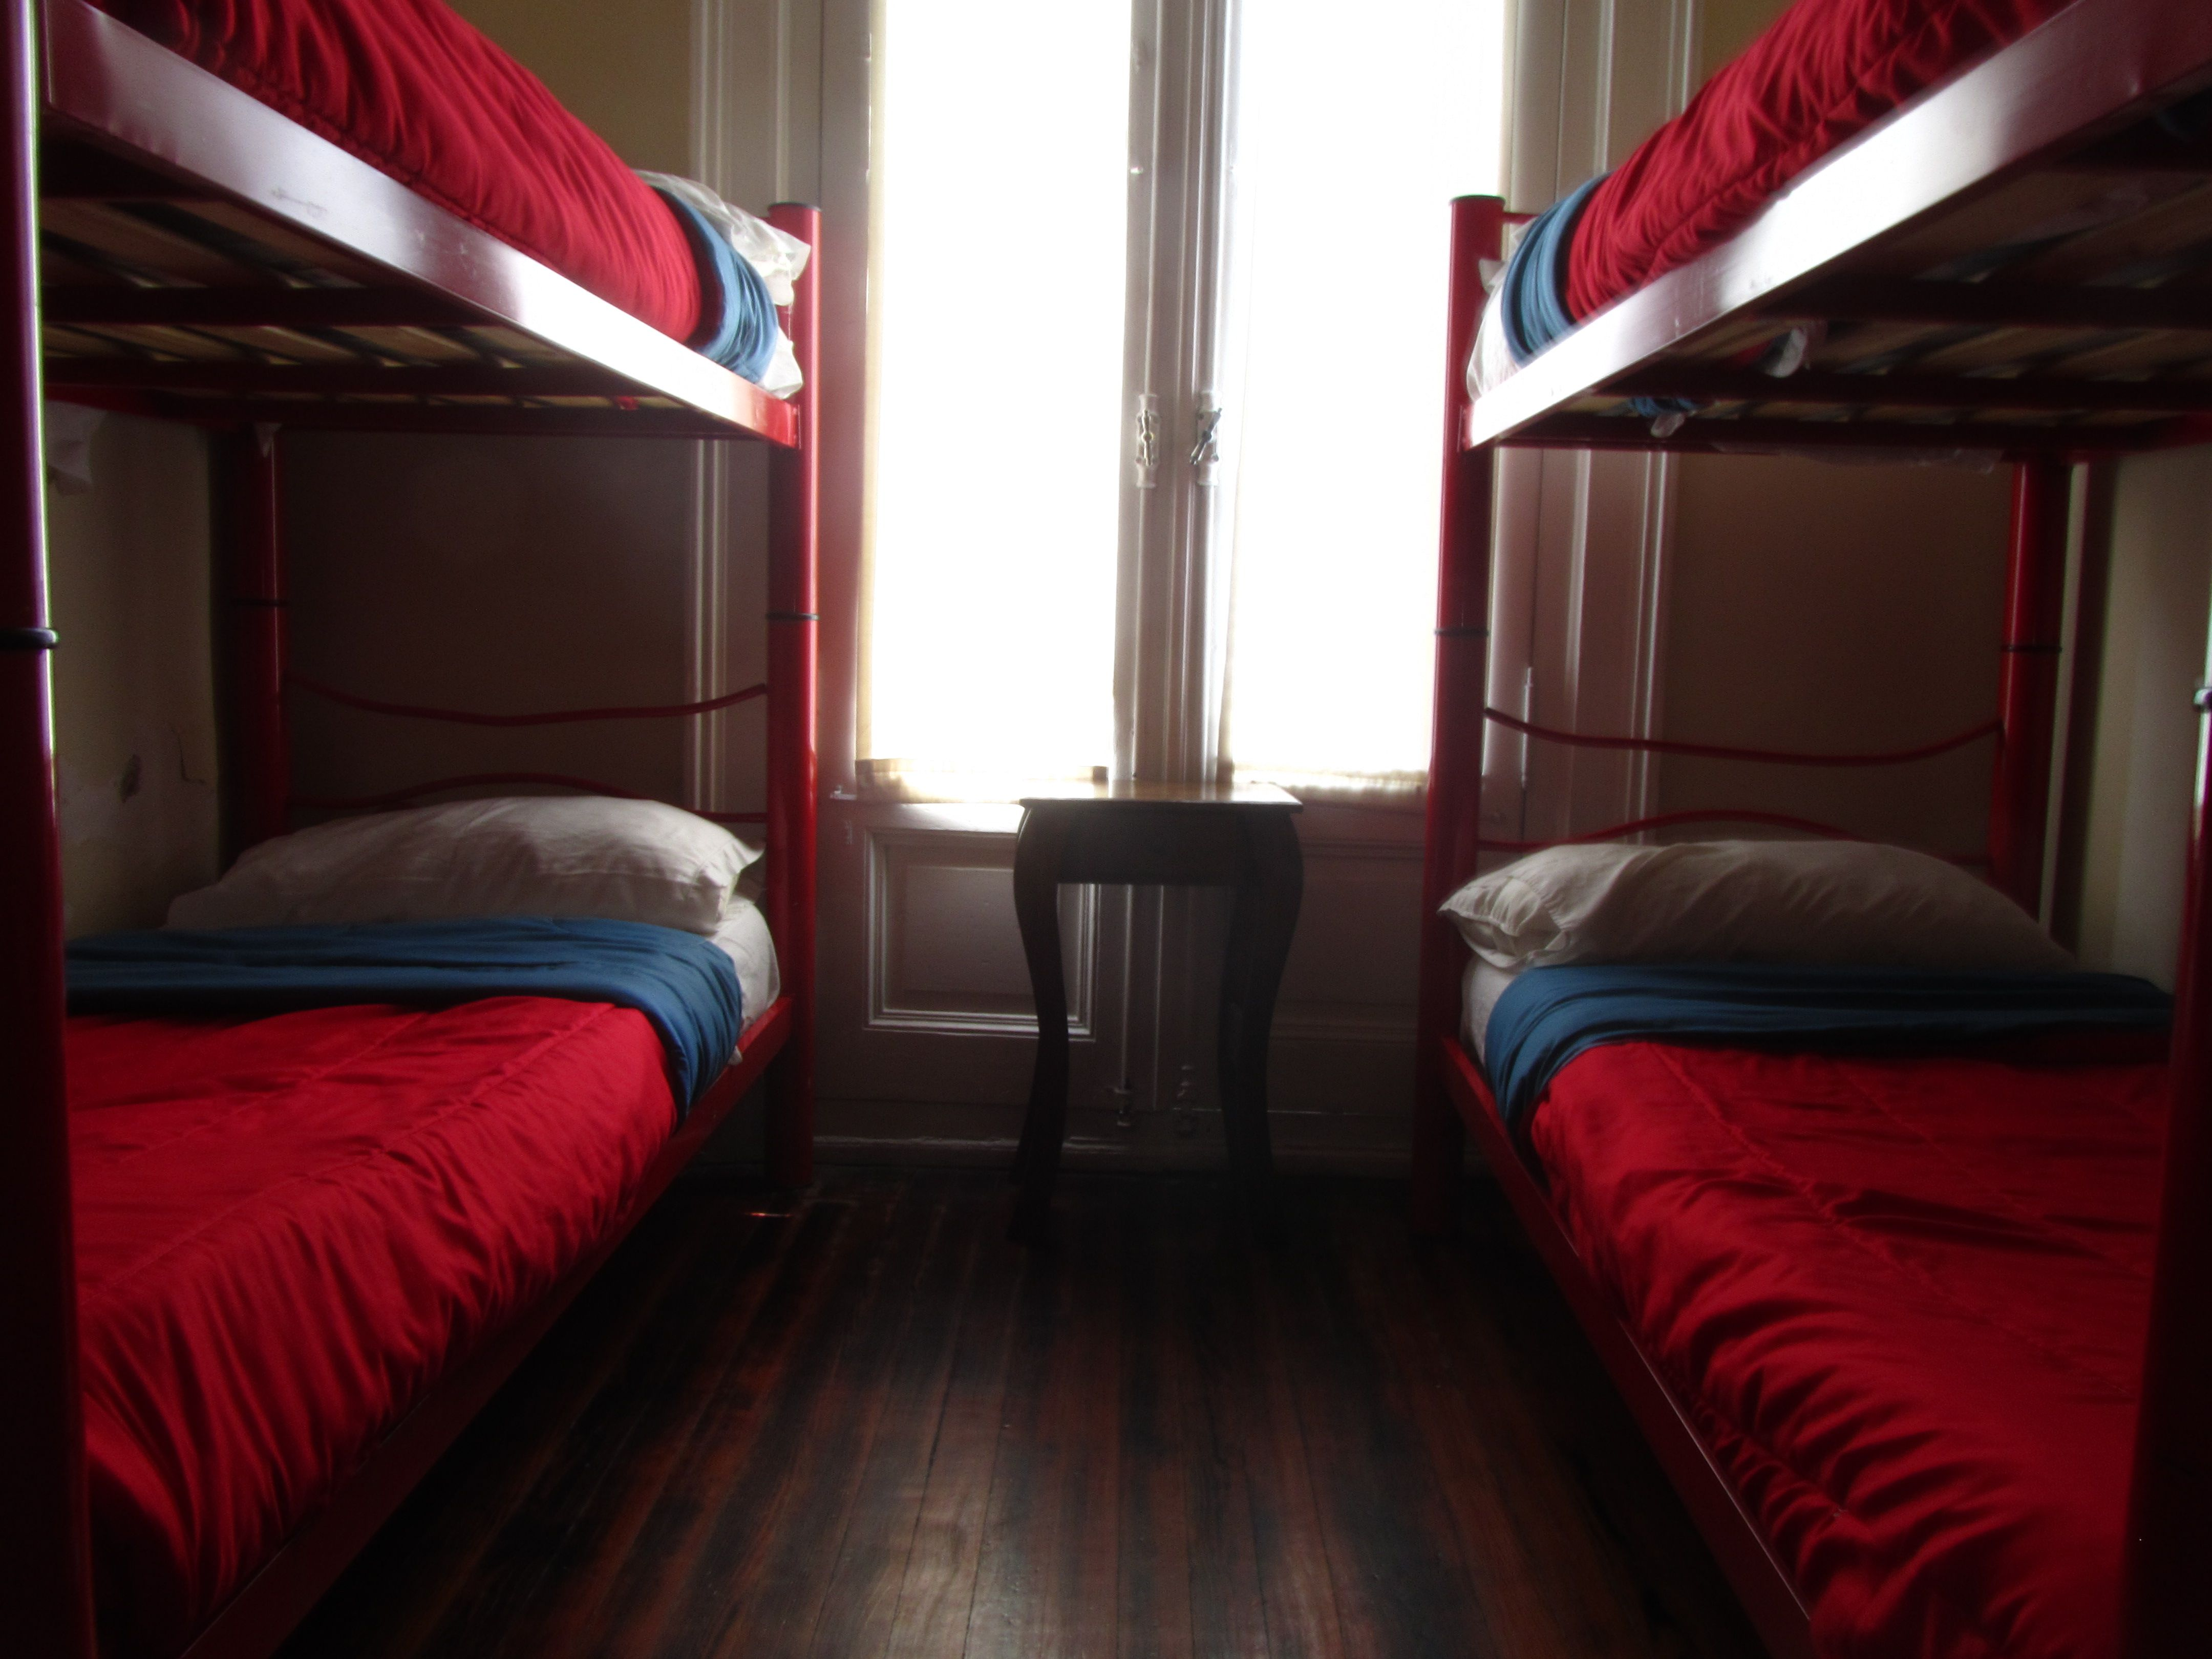 In our hostel We have 4, 6 and 8 bed forms. The rooms preserves original ceilings and wooden floors, It has comfortable beds and lockers where you can put you things.